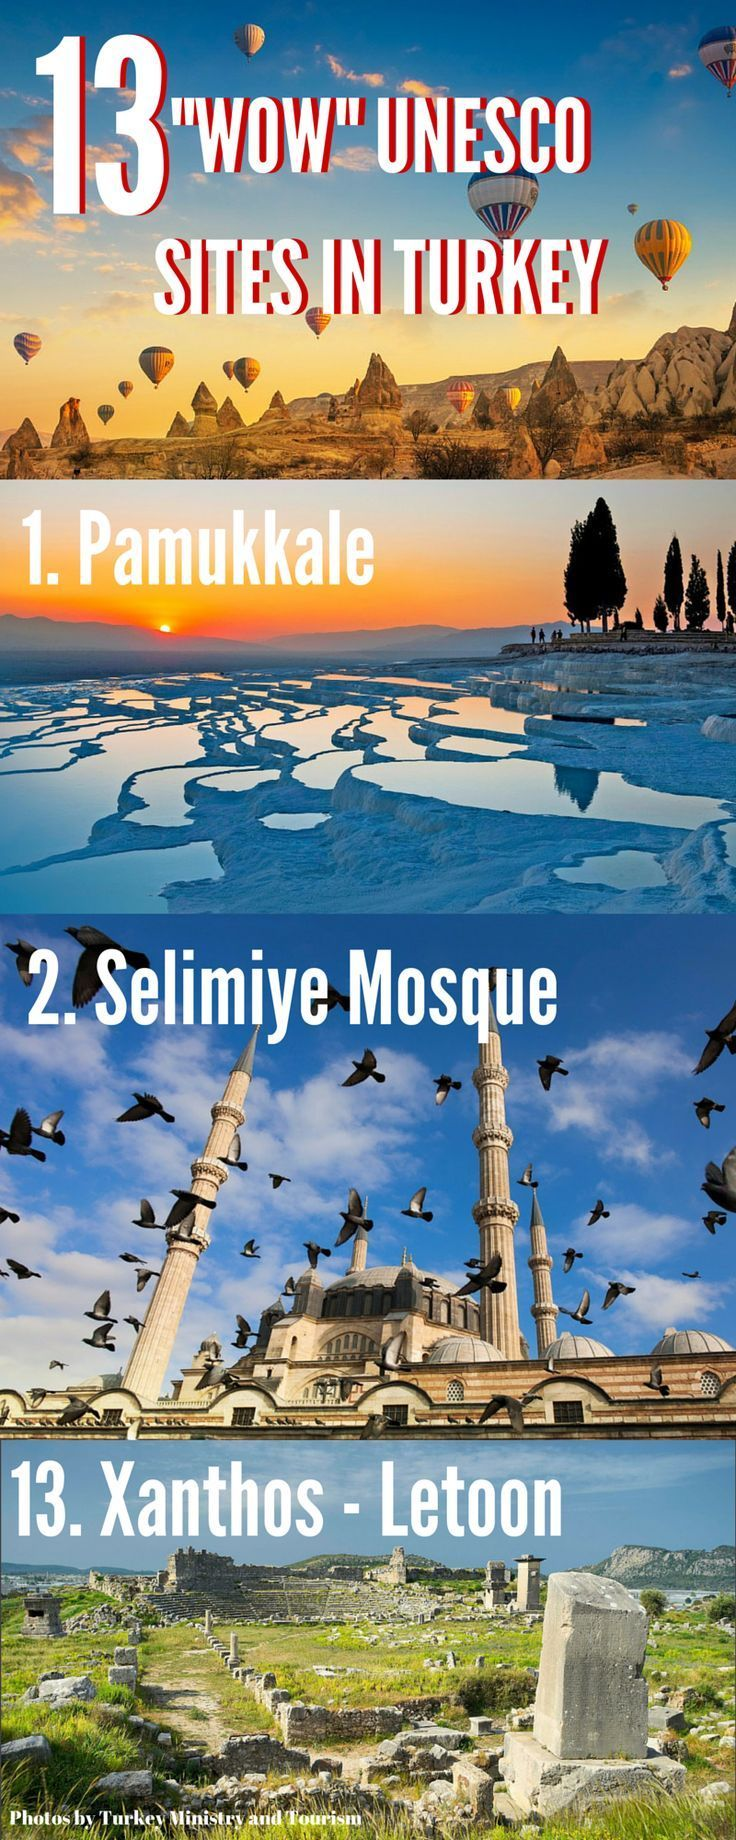 """Check out 13 amazing UNESCO sites in Turkey that will make you go """"Wow."""" For more amazing pictures of Turkey follow @turkeyhome. Make sure you go on your great #TurquoiseHunt this summer."""